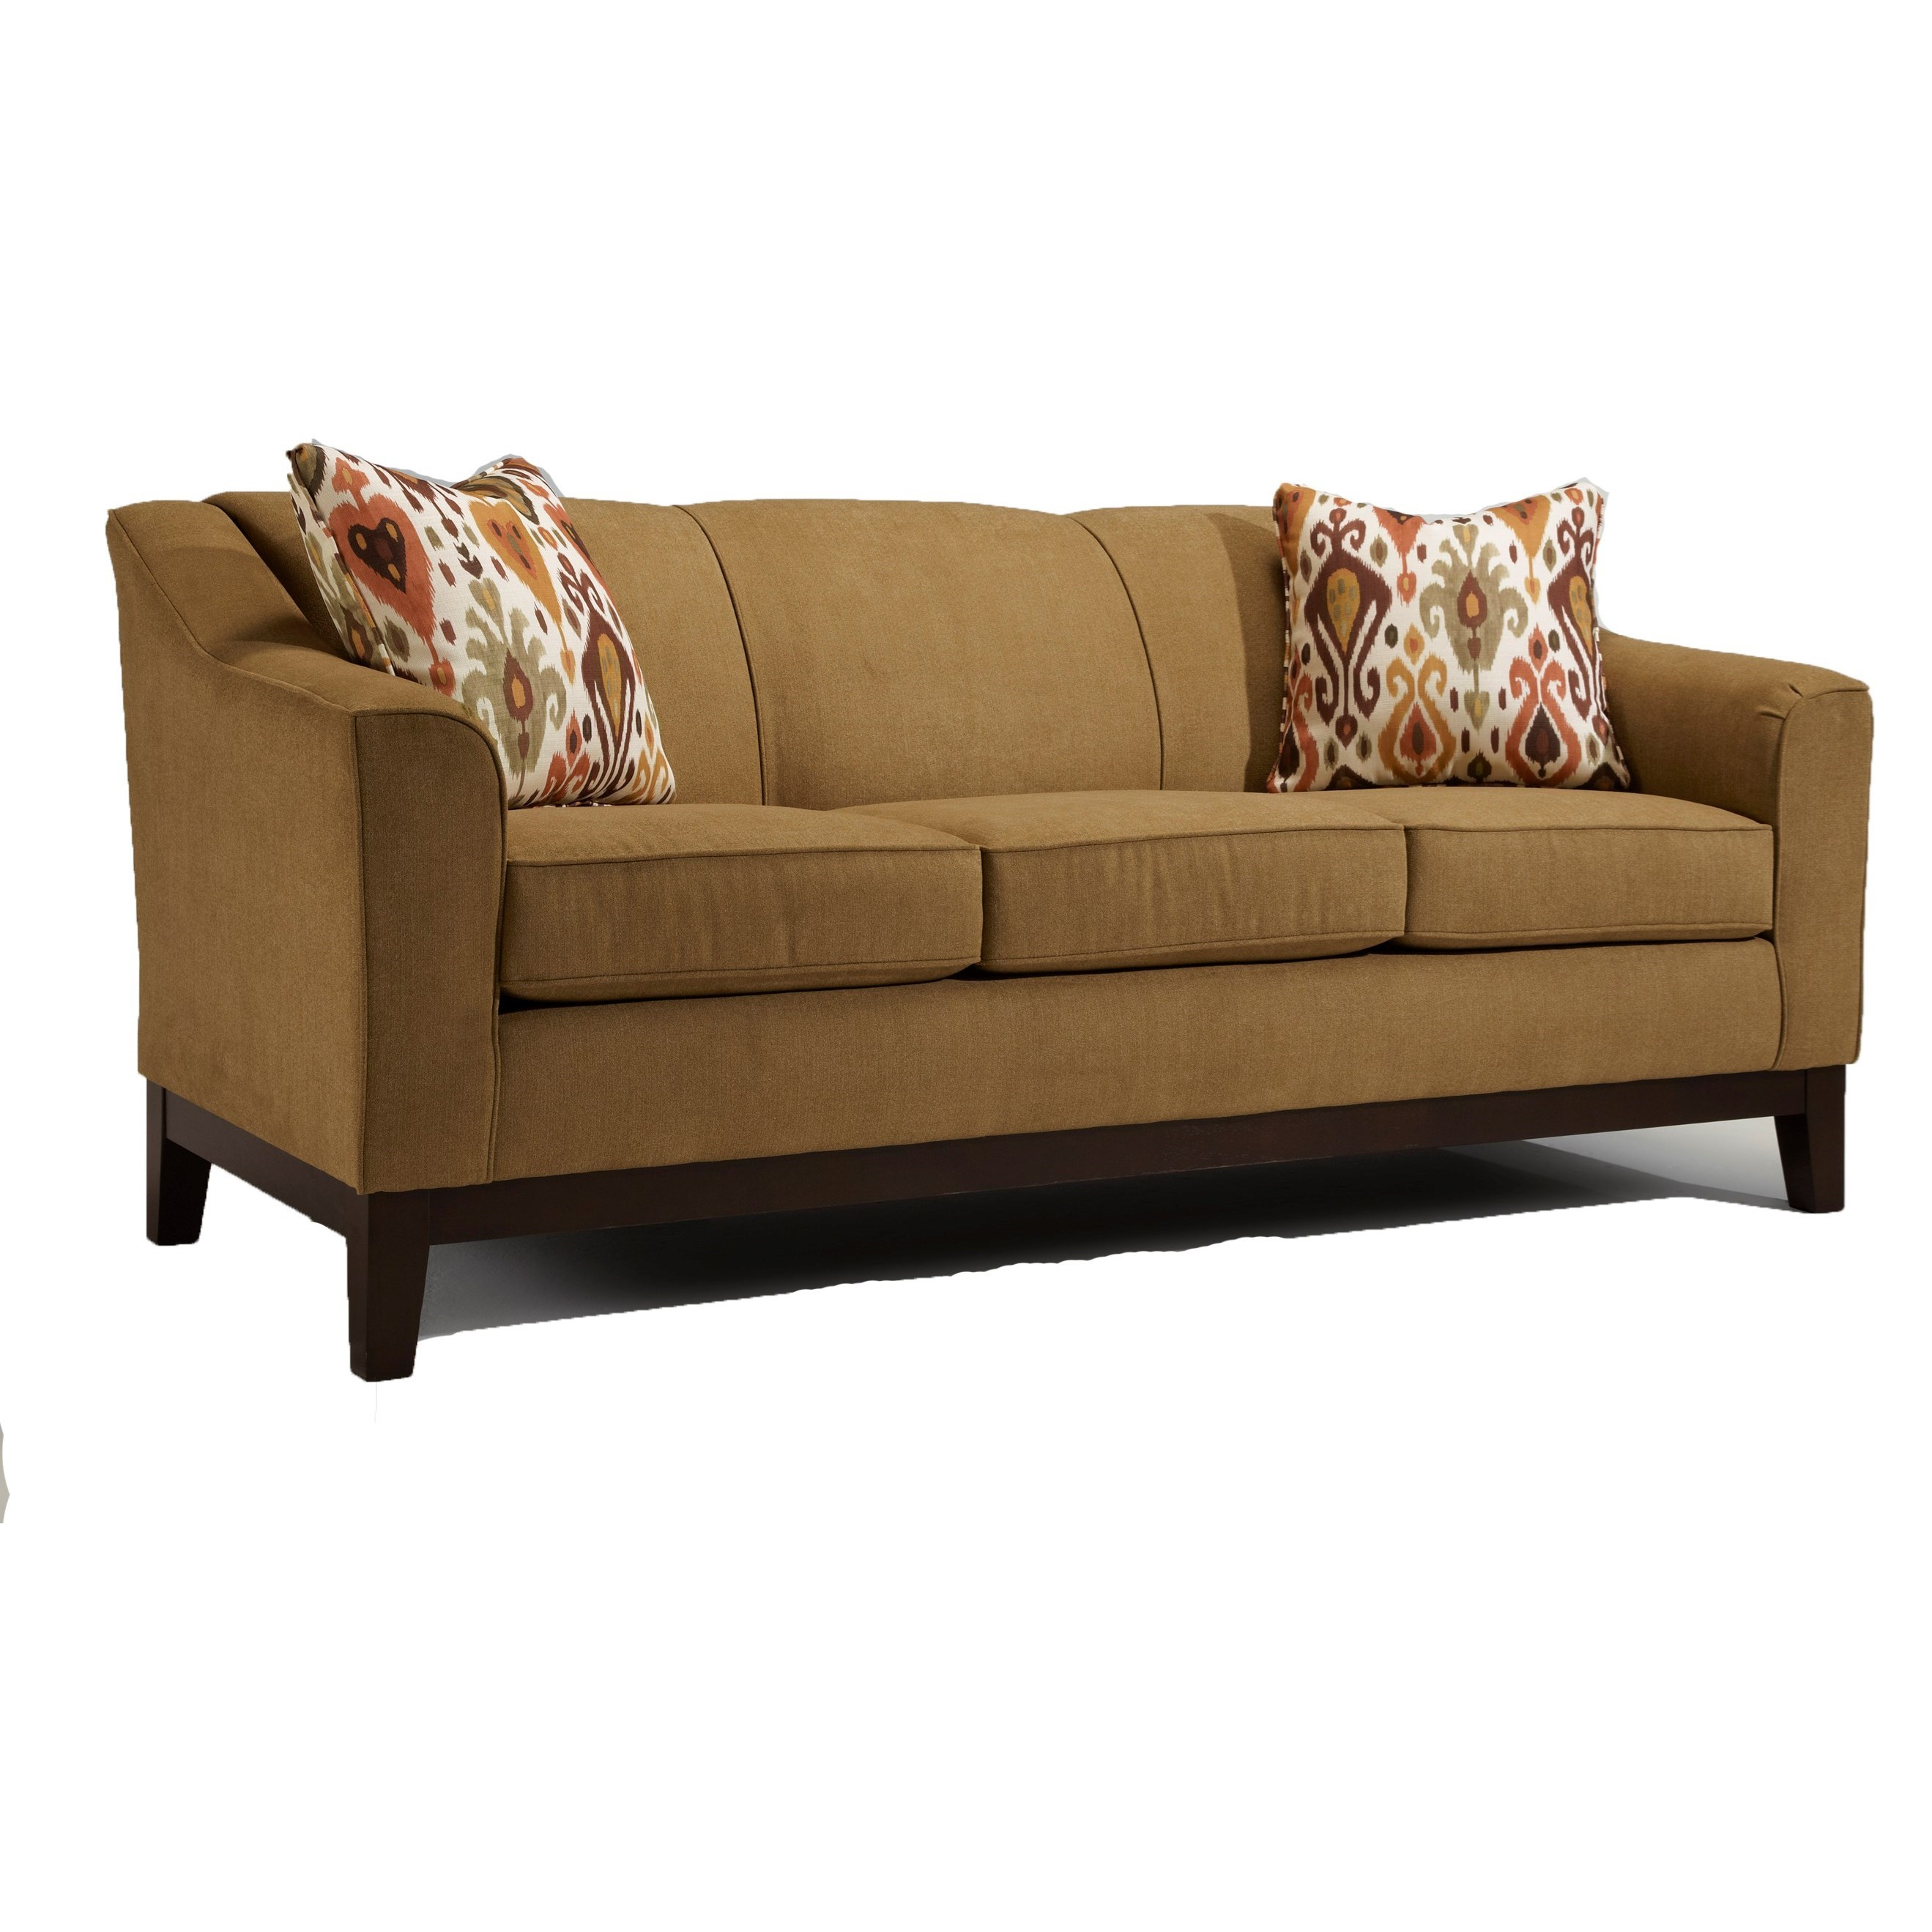 Best Home Furnishings Emeline Customizable Sofa - Item Number: S92E